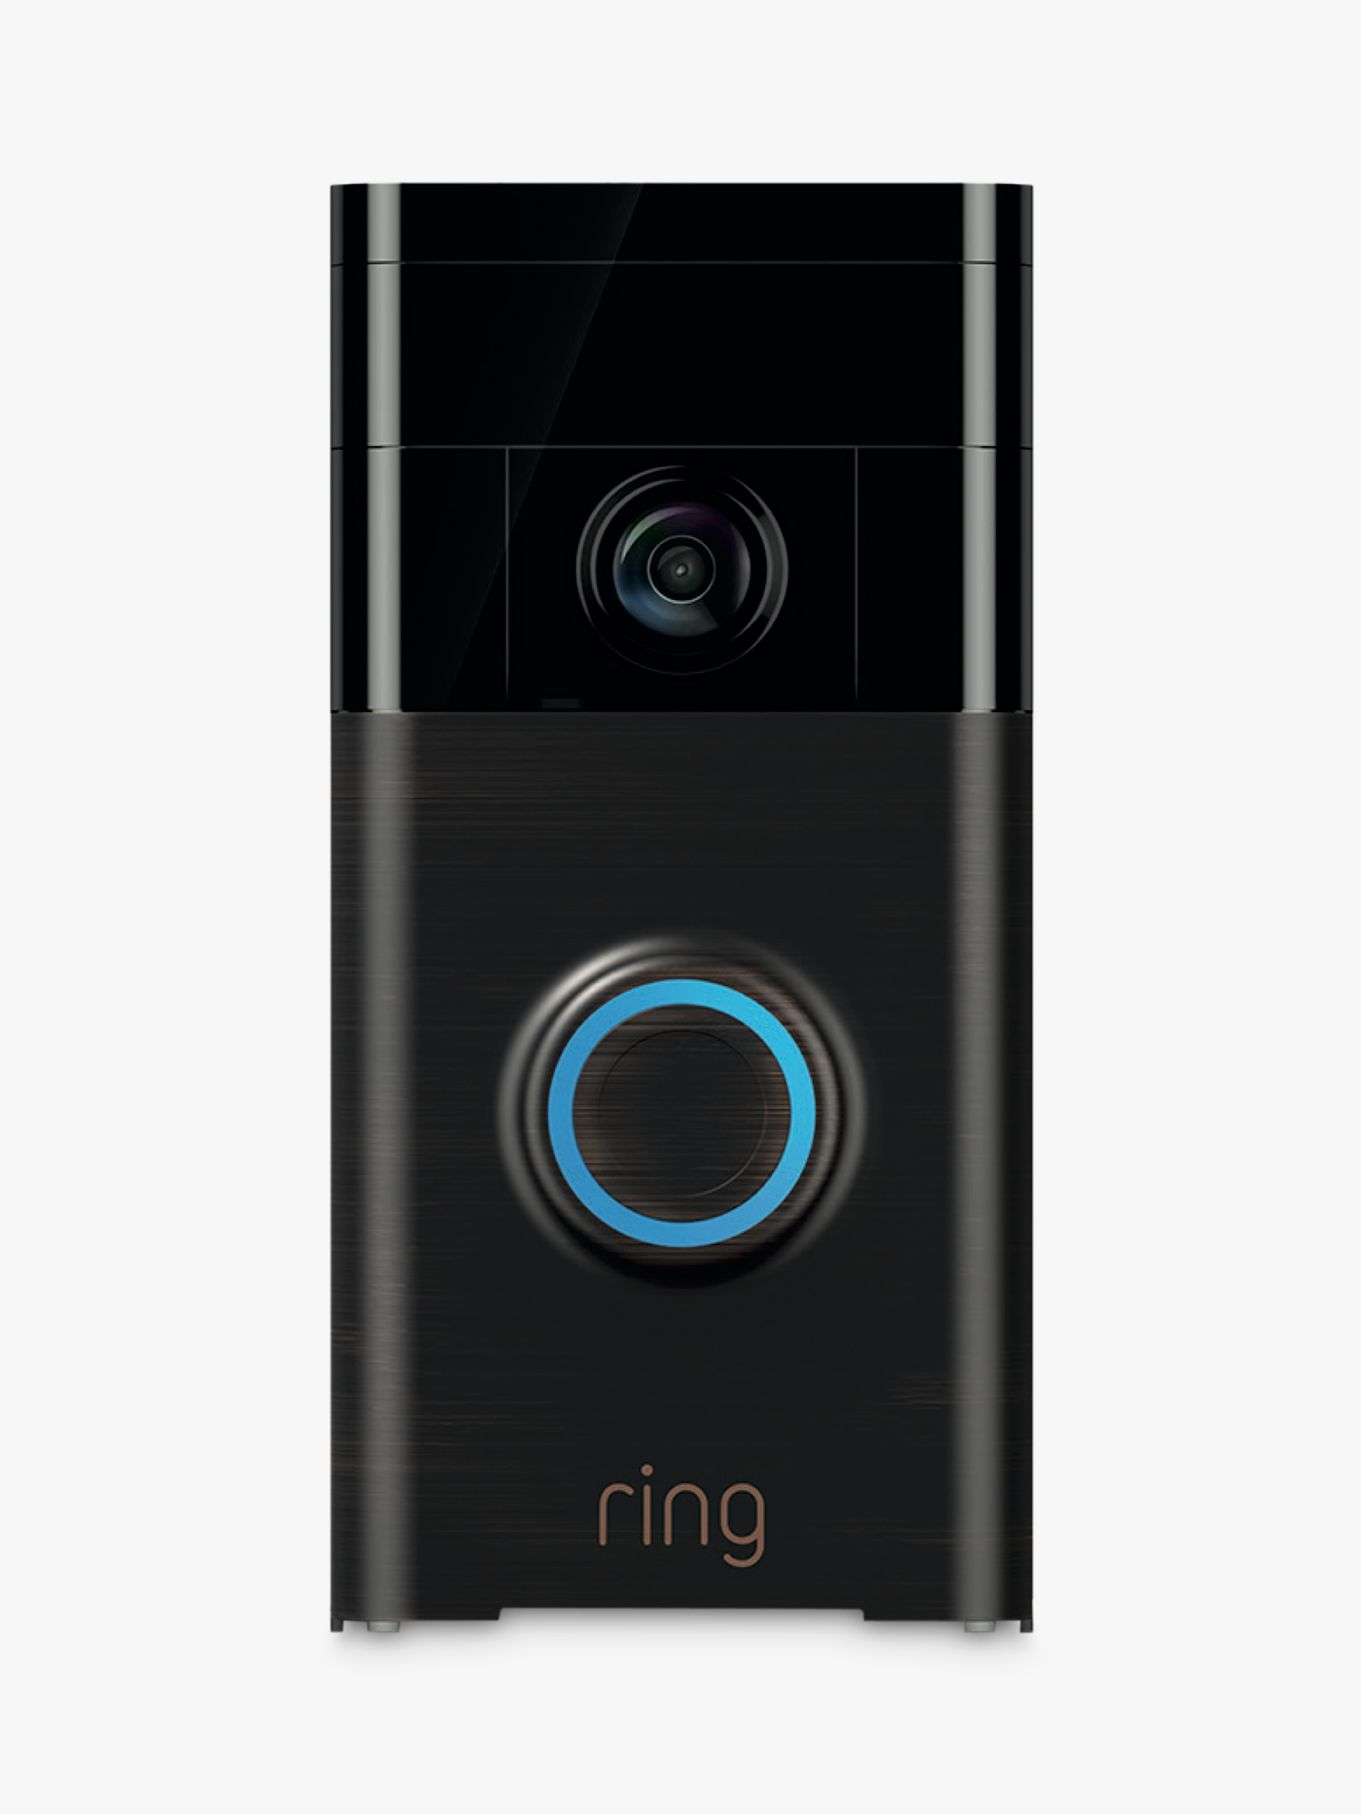 Ring Smart Video Doorbell with Built-in Wi-Fi & Camera, Venetian Bronze